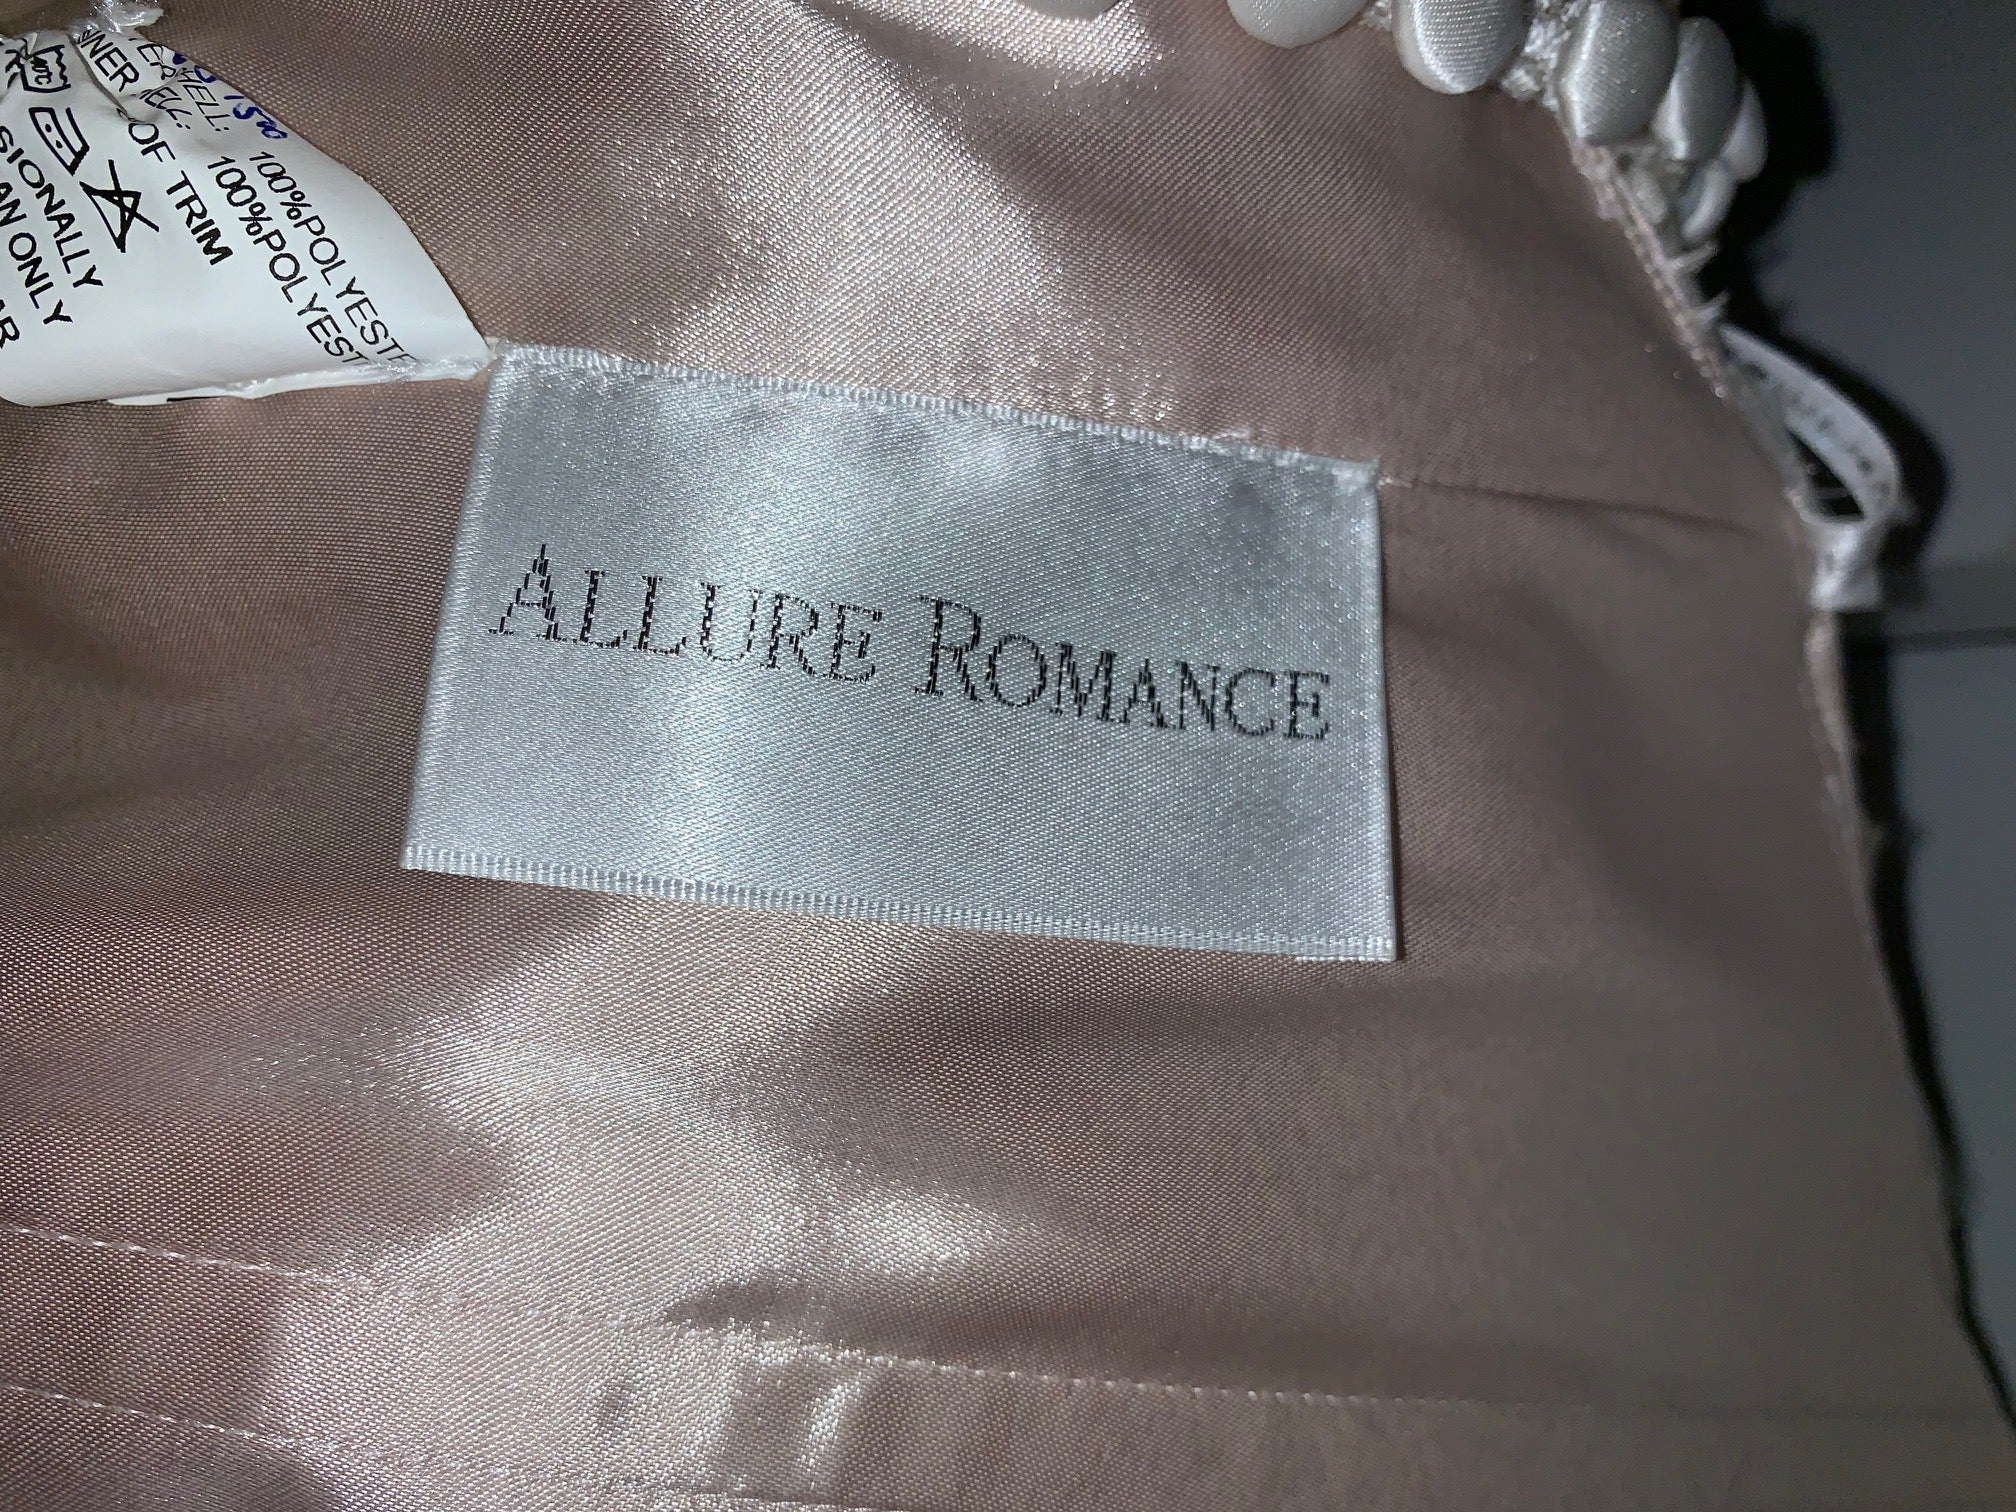 Allure Romance - 3106 - Size 22 - Champ/Nude/Ivory/Silver